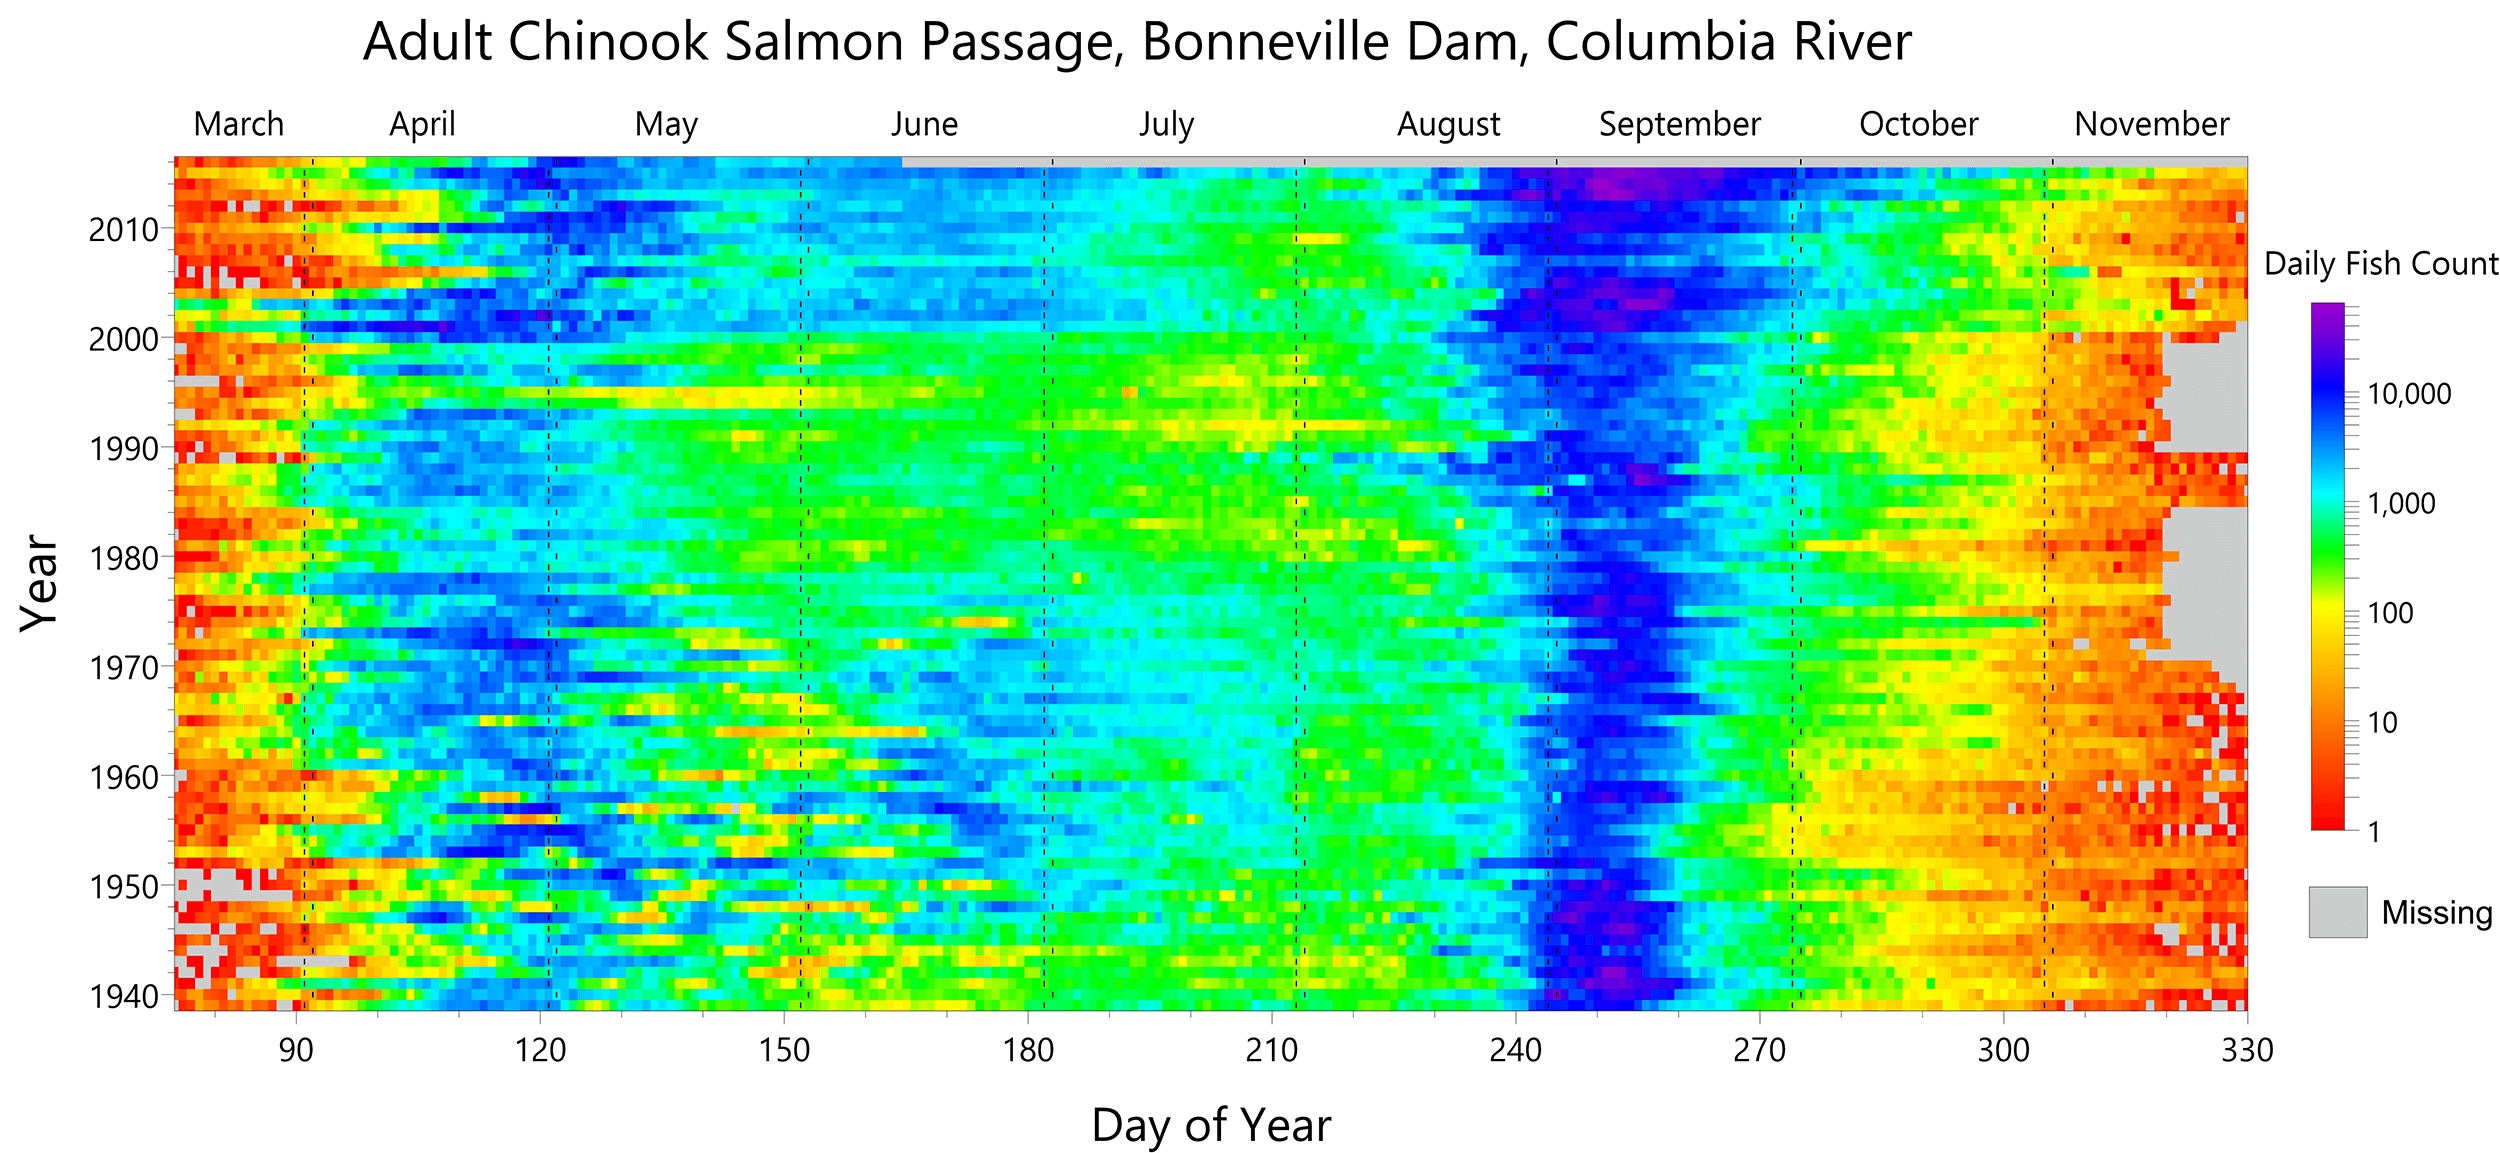 Raster map visualizing Chinook salmon migration at the Bonneville Dam on the Columbia River - visualized in Surfer | 2D & 3D mapping, modeling, and analysis software for scientists and engineers